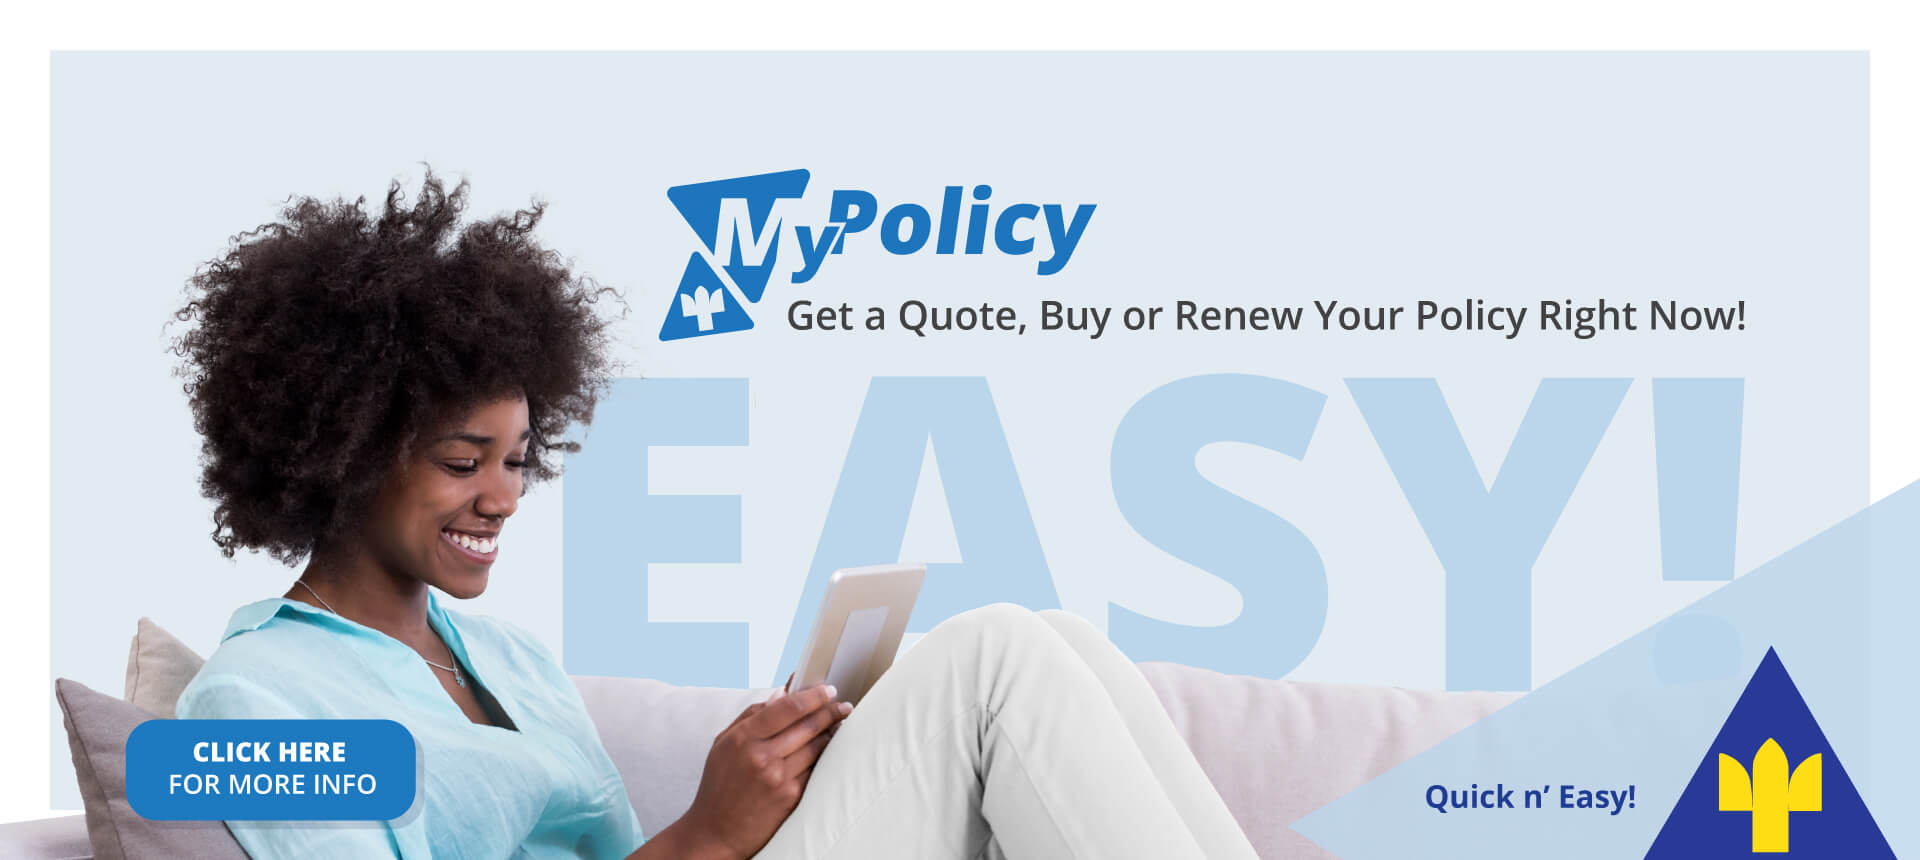 Trident Insurance - MyPolicy